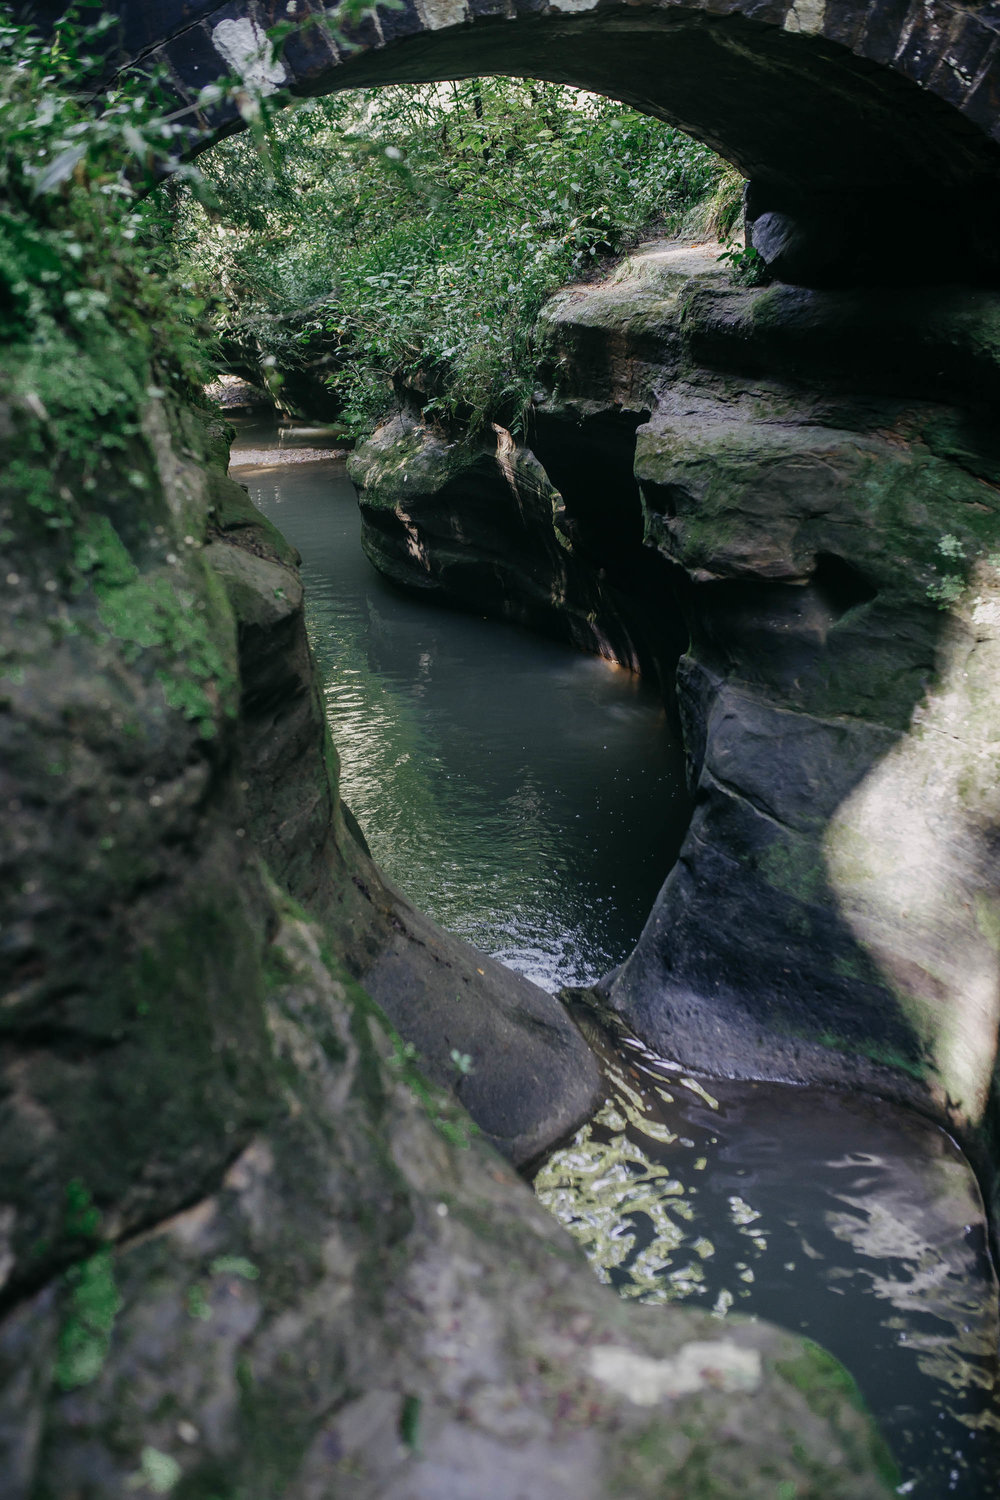 Devil's Bathtub Old Man's Trail Hocking Hills State Park Ohio Catchfly Photography